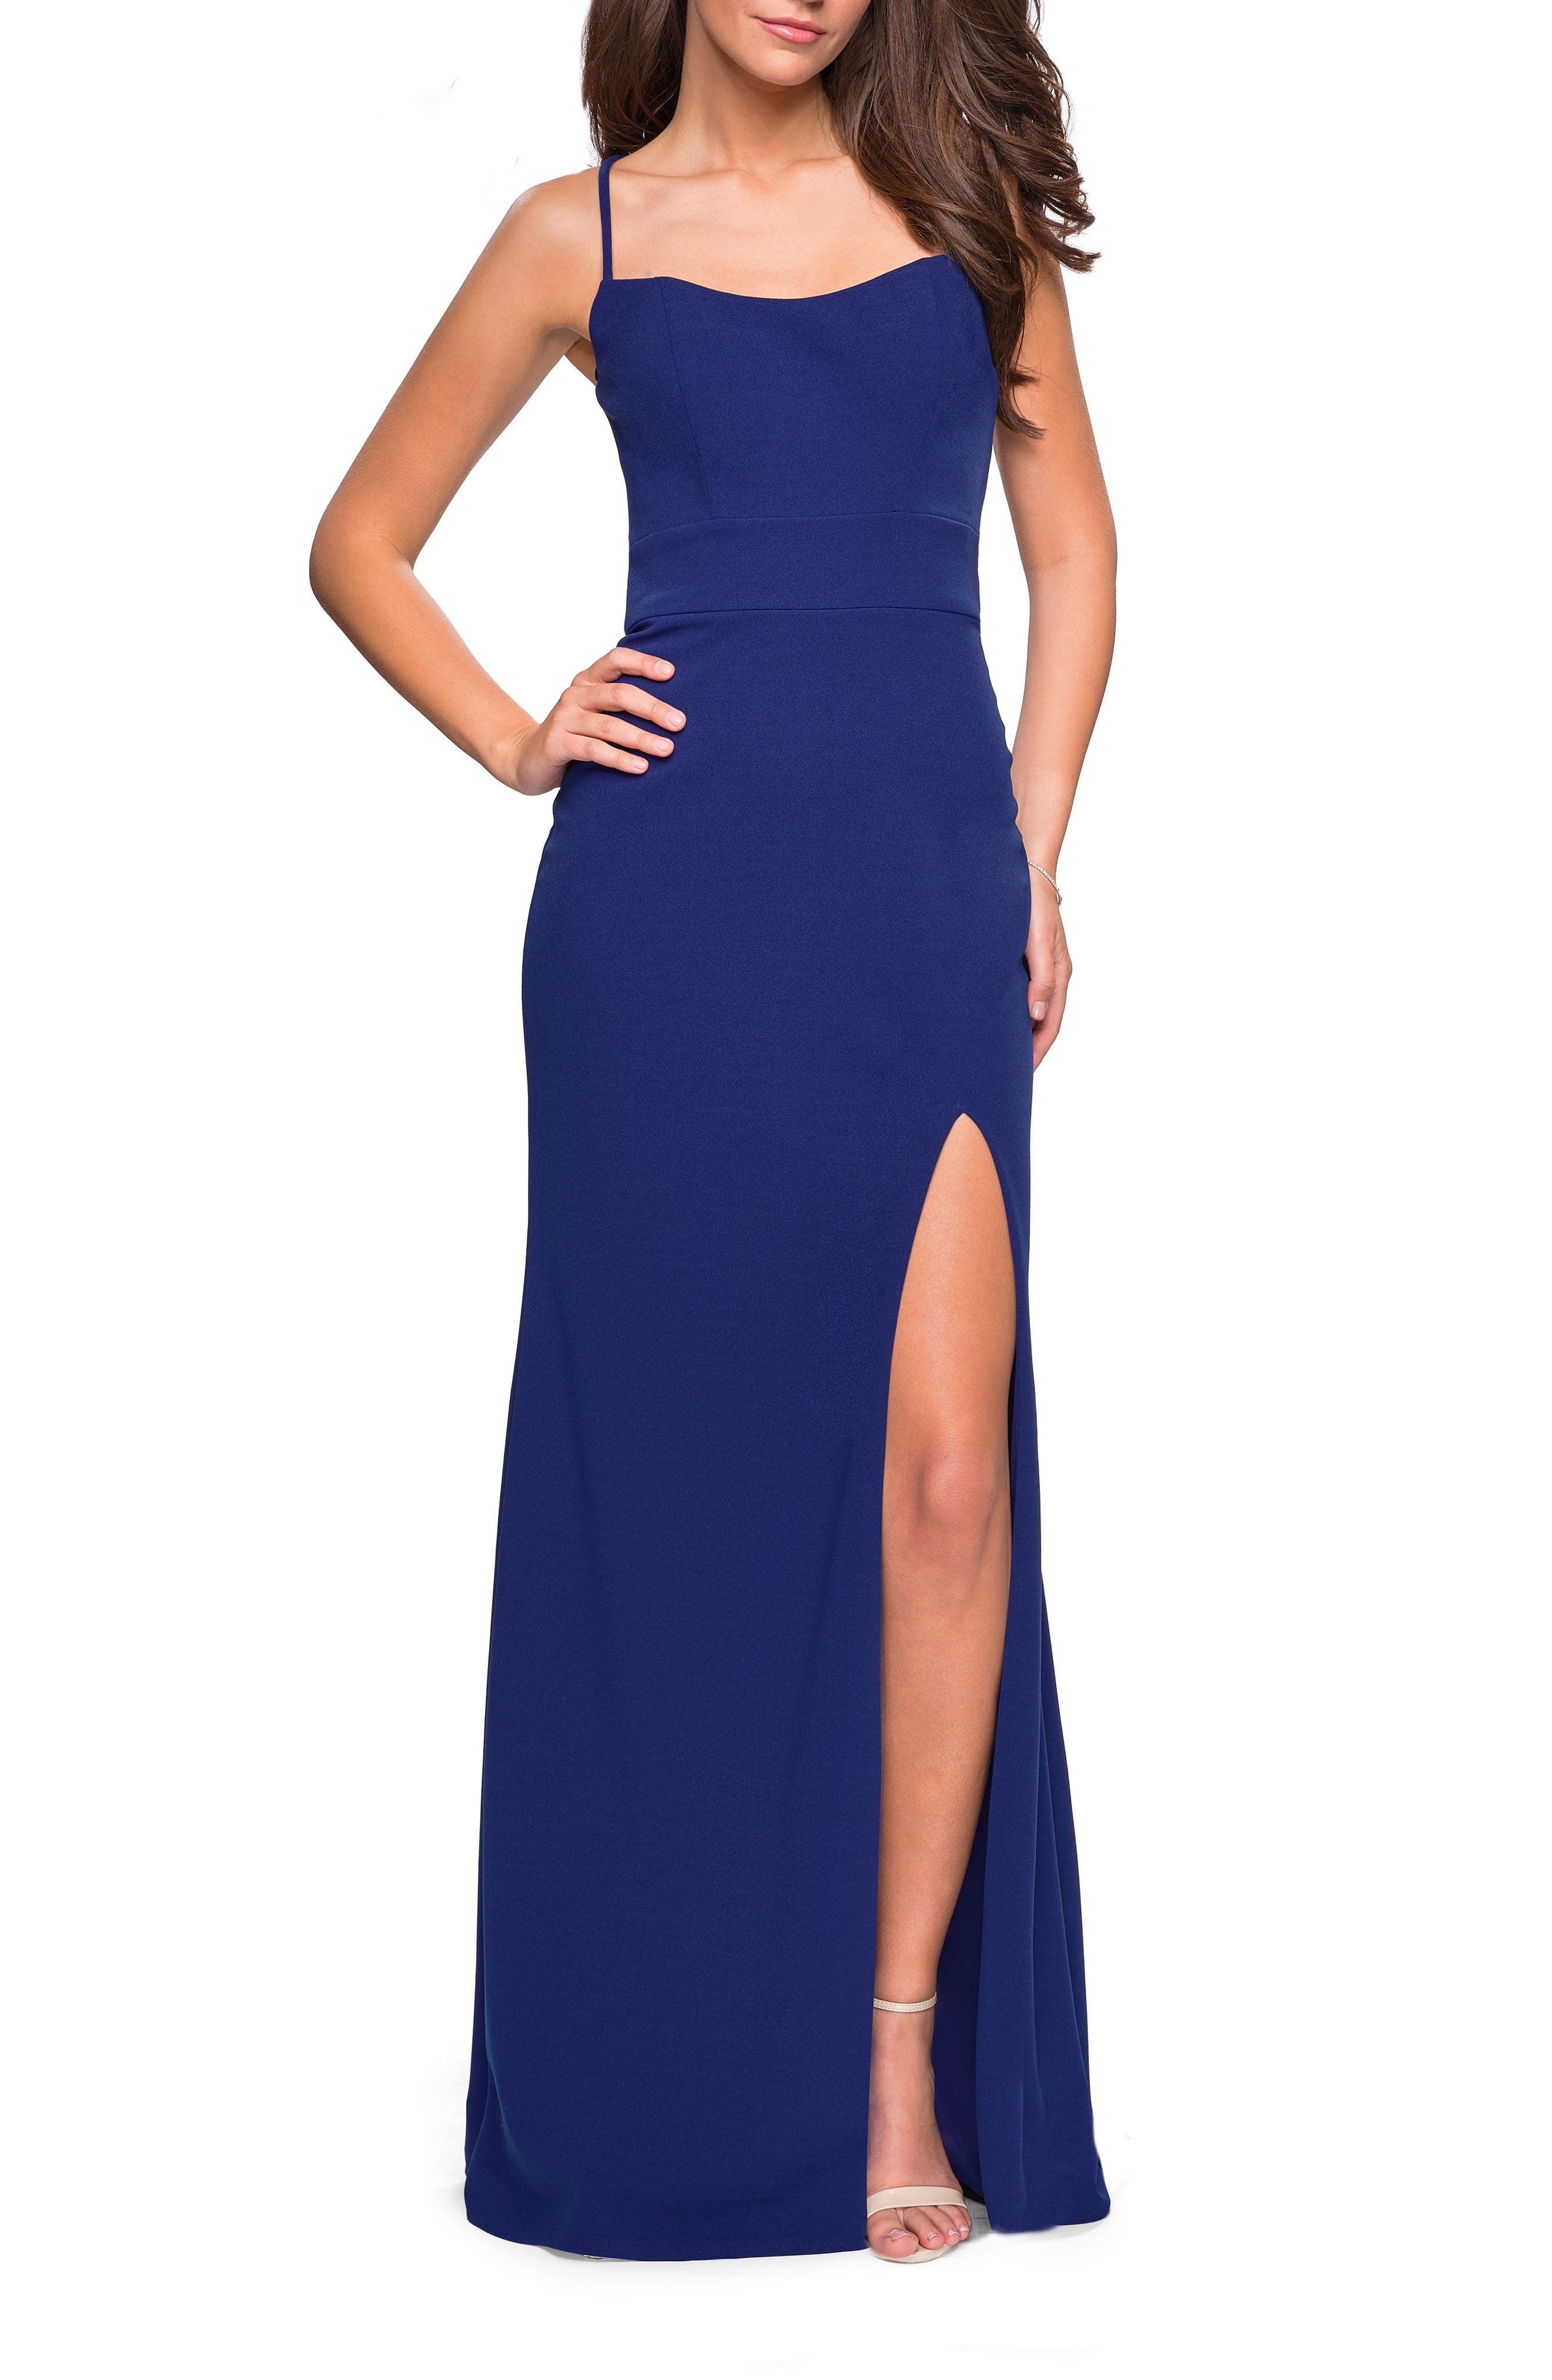 La Femme Sweetheart Neck Jersey Evening Dress, Blue